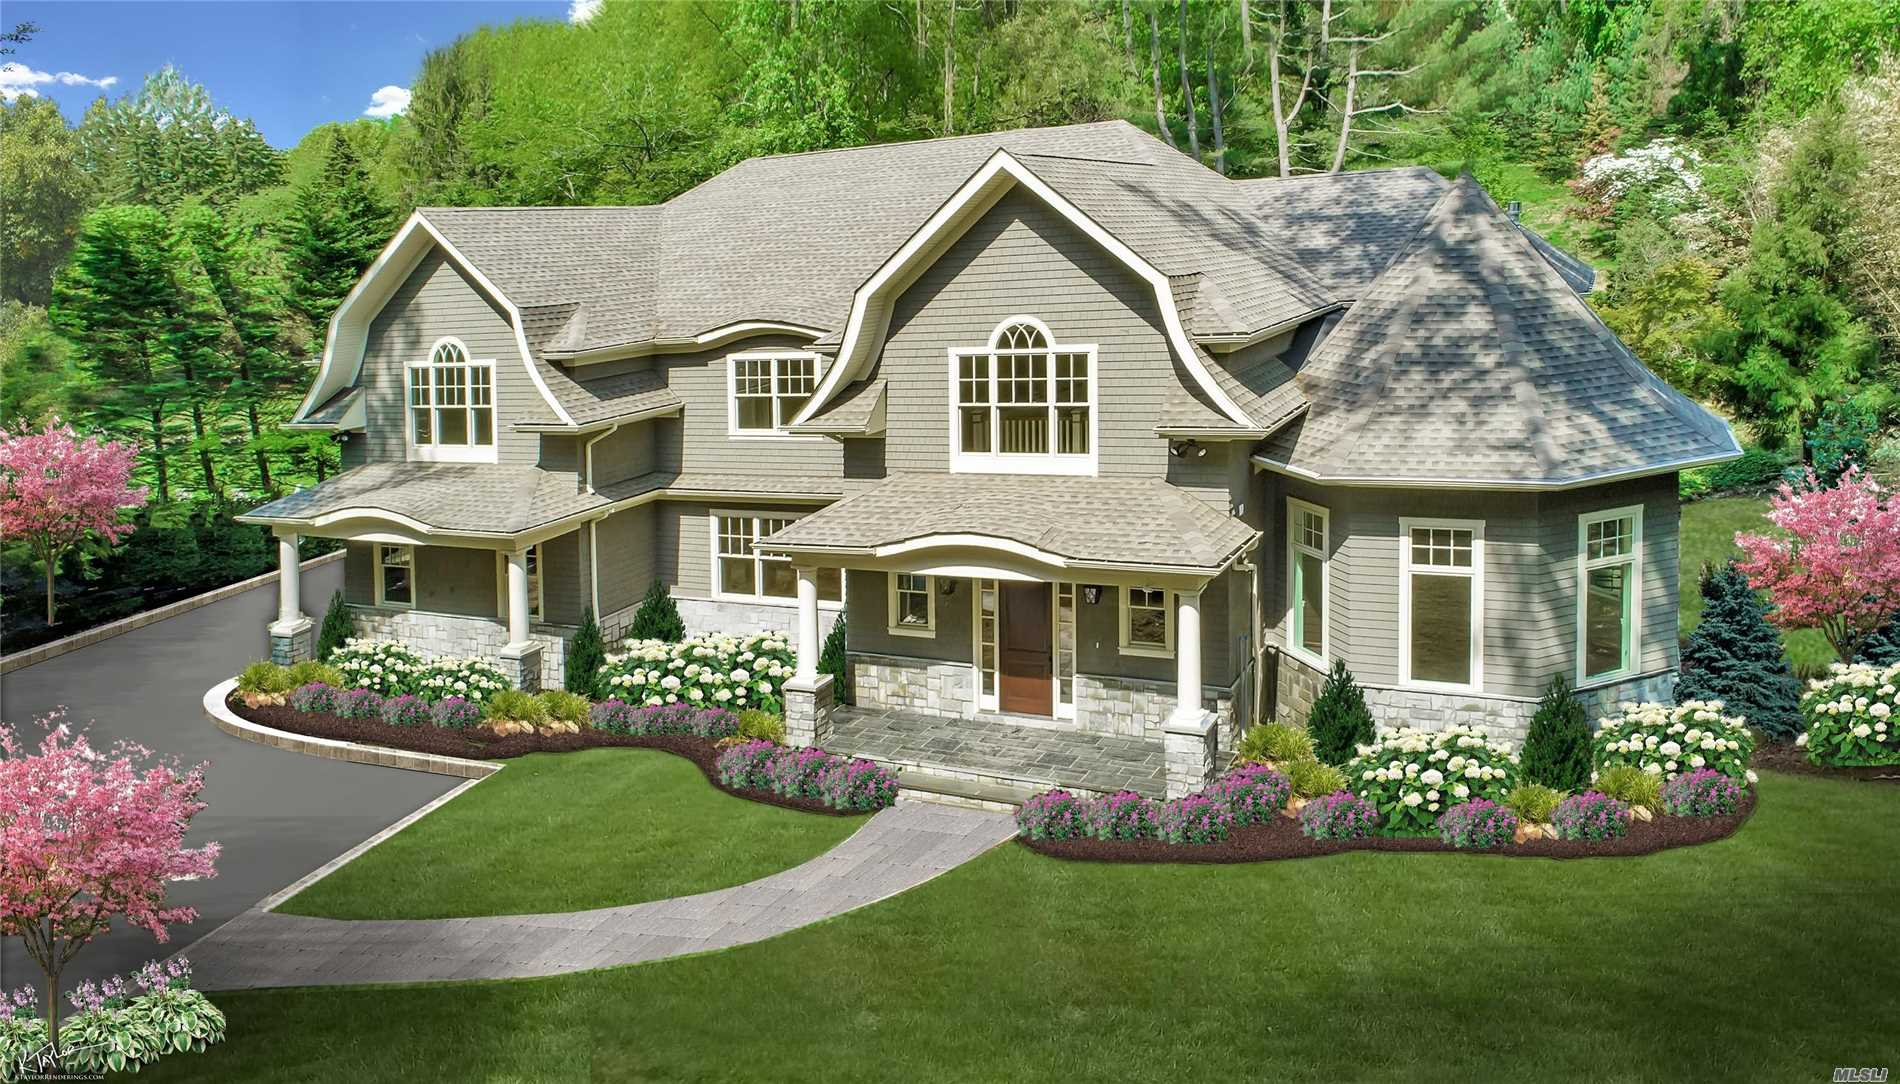 Roslyn Harbor. Spectacular New Construction In The Heart Of Roslyn Harbor. Featuring 6300 Square Feet Of Hampton Style Luxury On Over 1 Lush Acre. 6 Bedrooms, 4.5 Baths With Radiant Heat, Huge Rooms For Entertaining & Soaring Ceilings. Perfection!